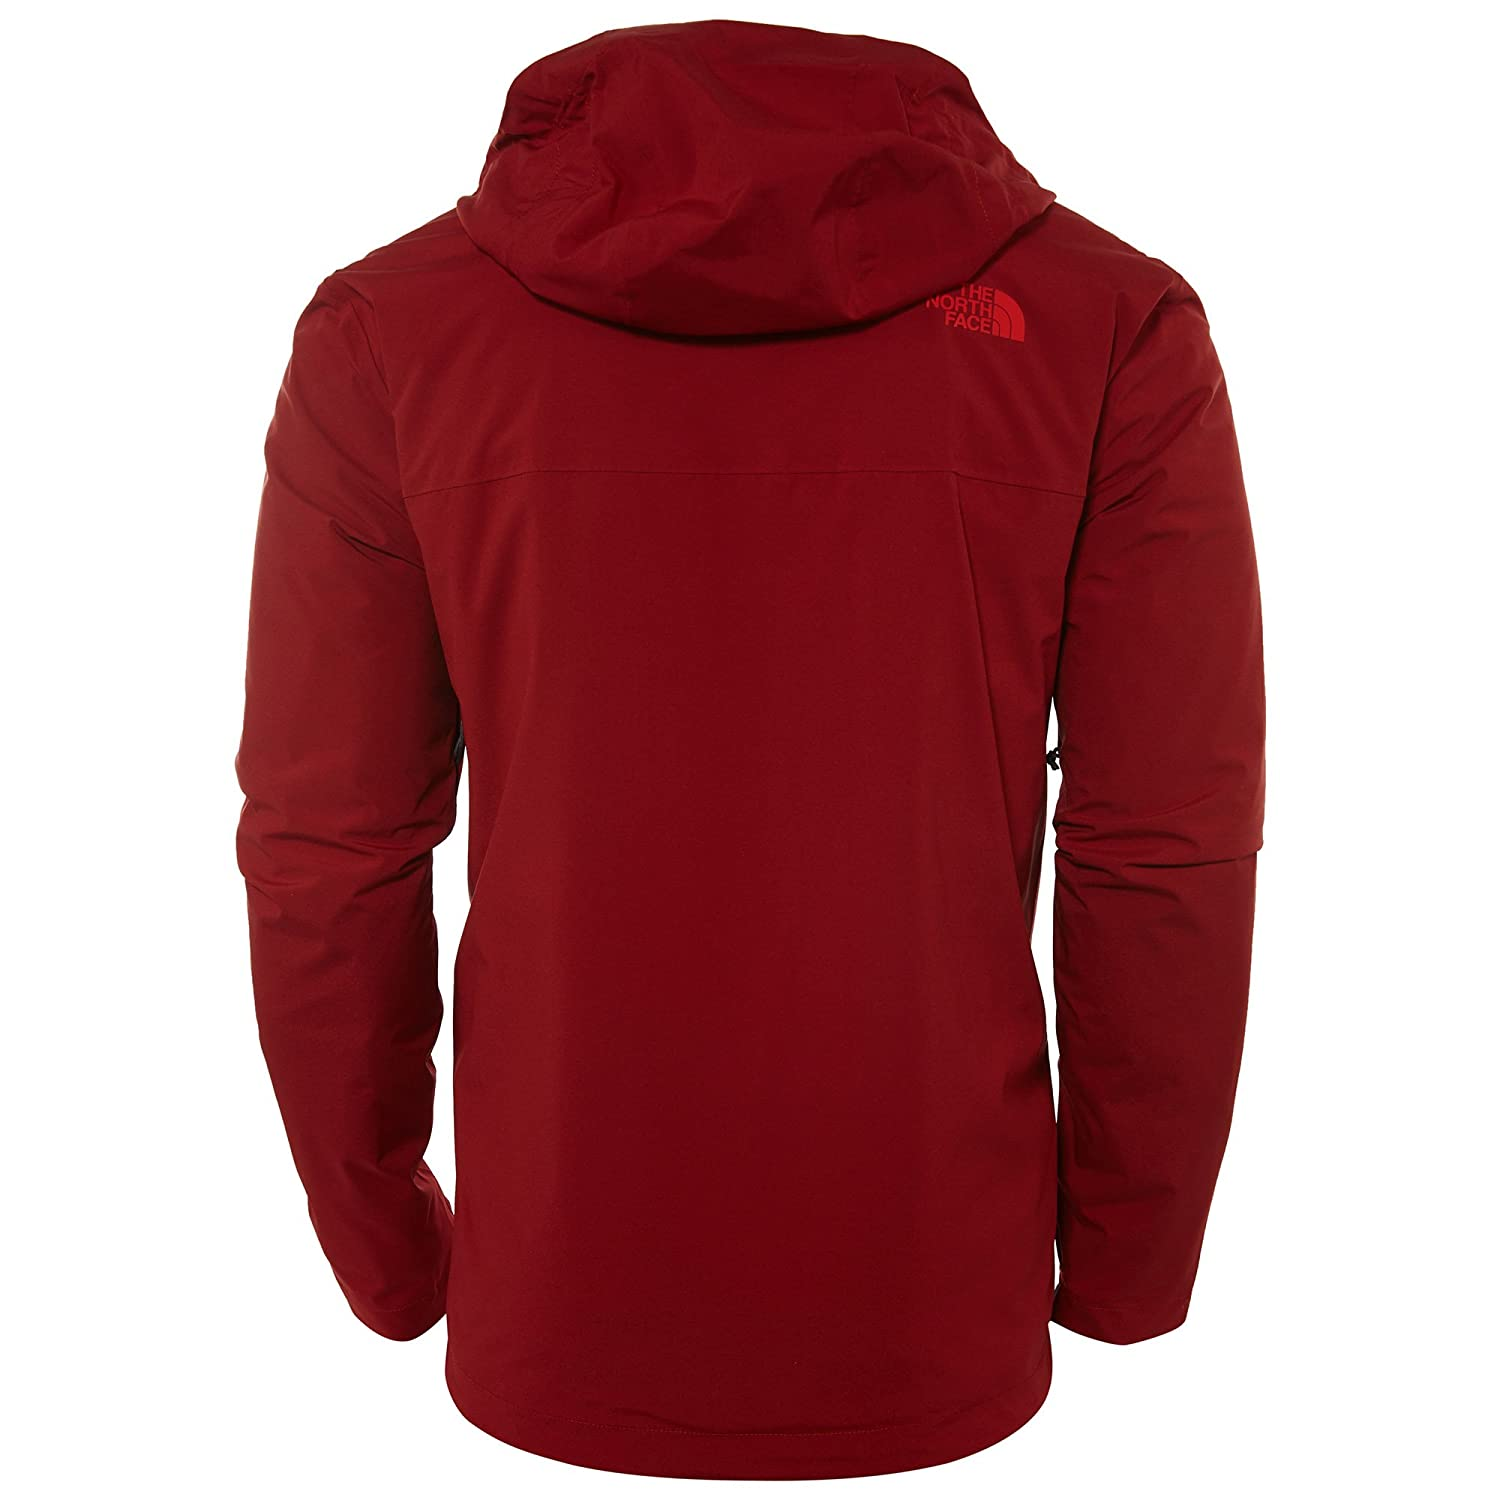 02af00b1f180 The North Face Thermoball Triclimate Jacket - Men s - Red -  Amazon.co.uk   Clothing